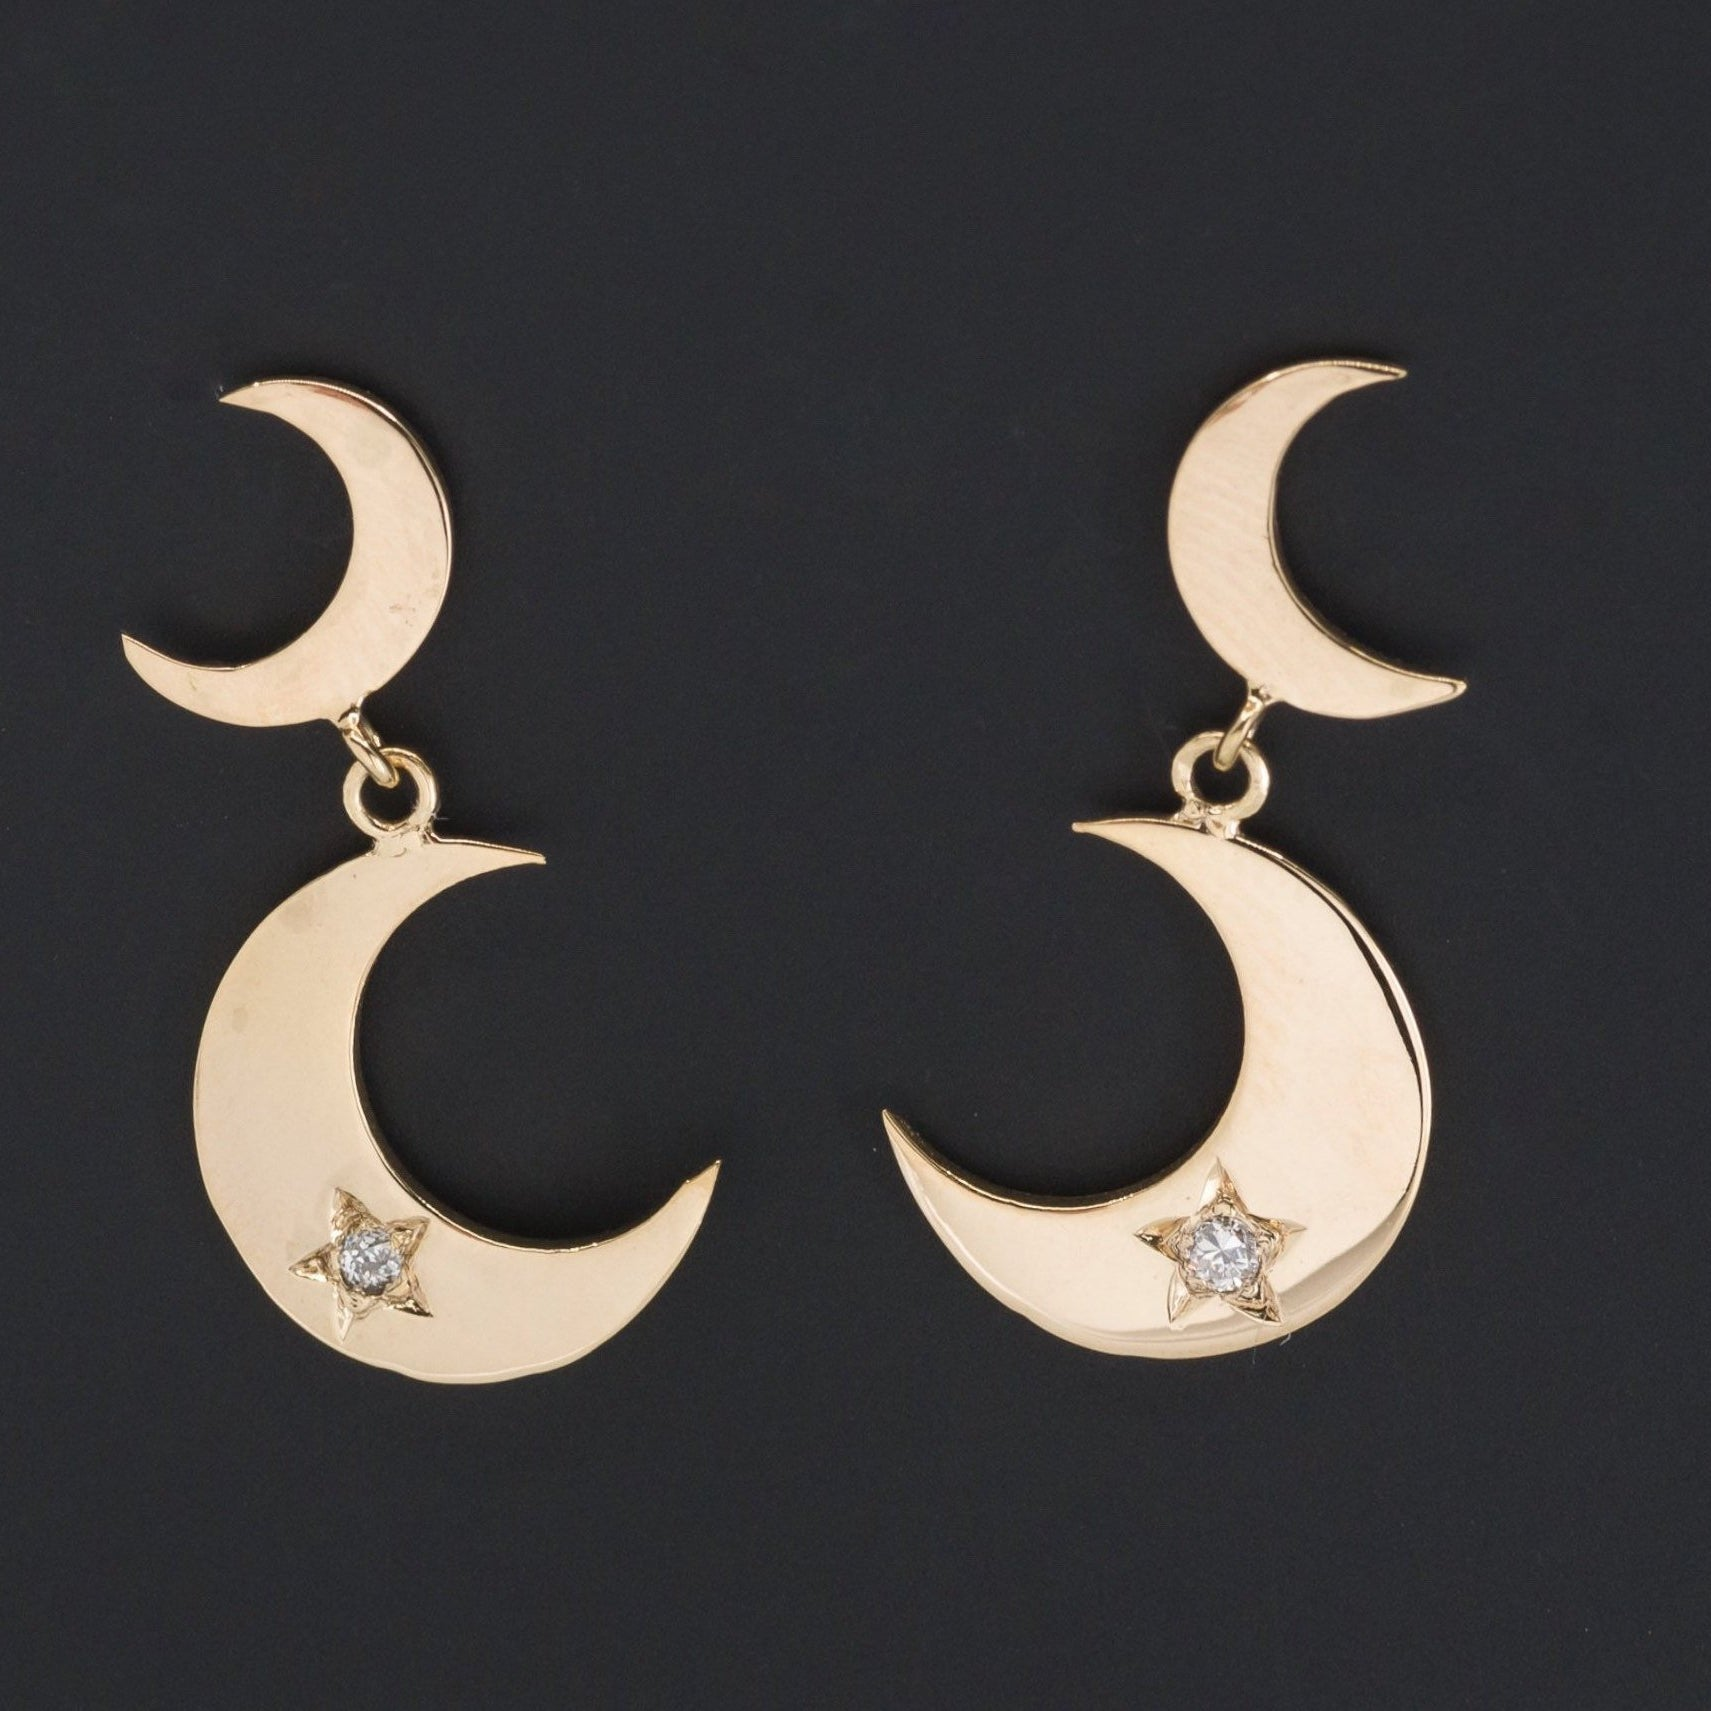 Crescent Moon Earrings | Diamond Crescent Earrings | Diamond Moon and Star Earrings | Celestial Earrings | 18k Gold Earrings